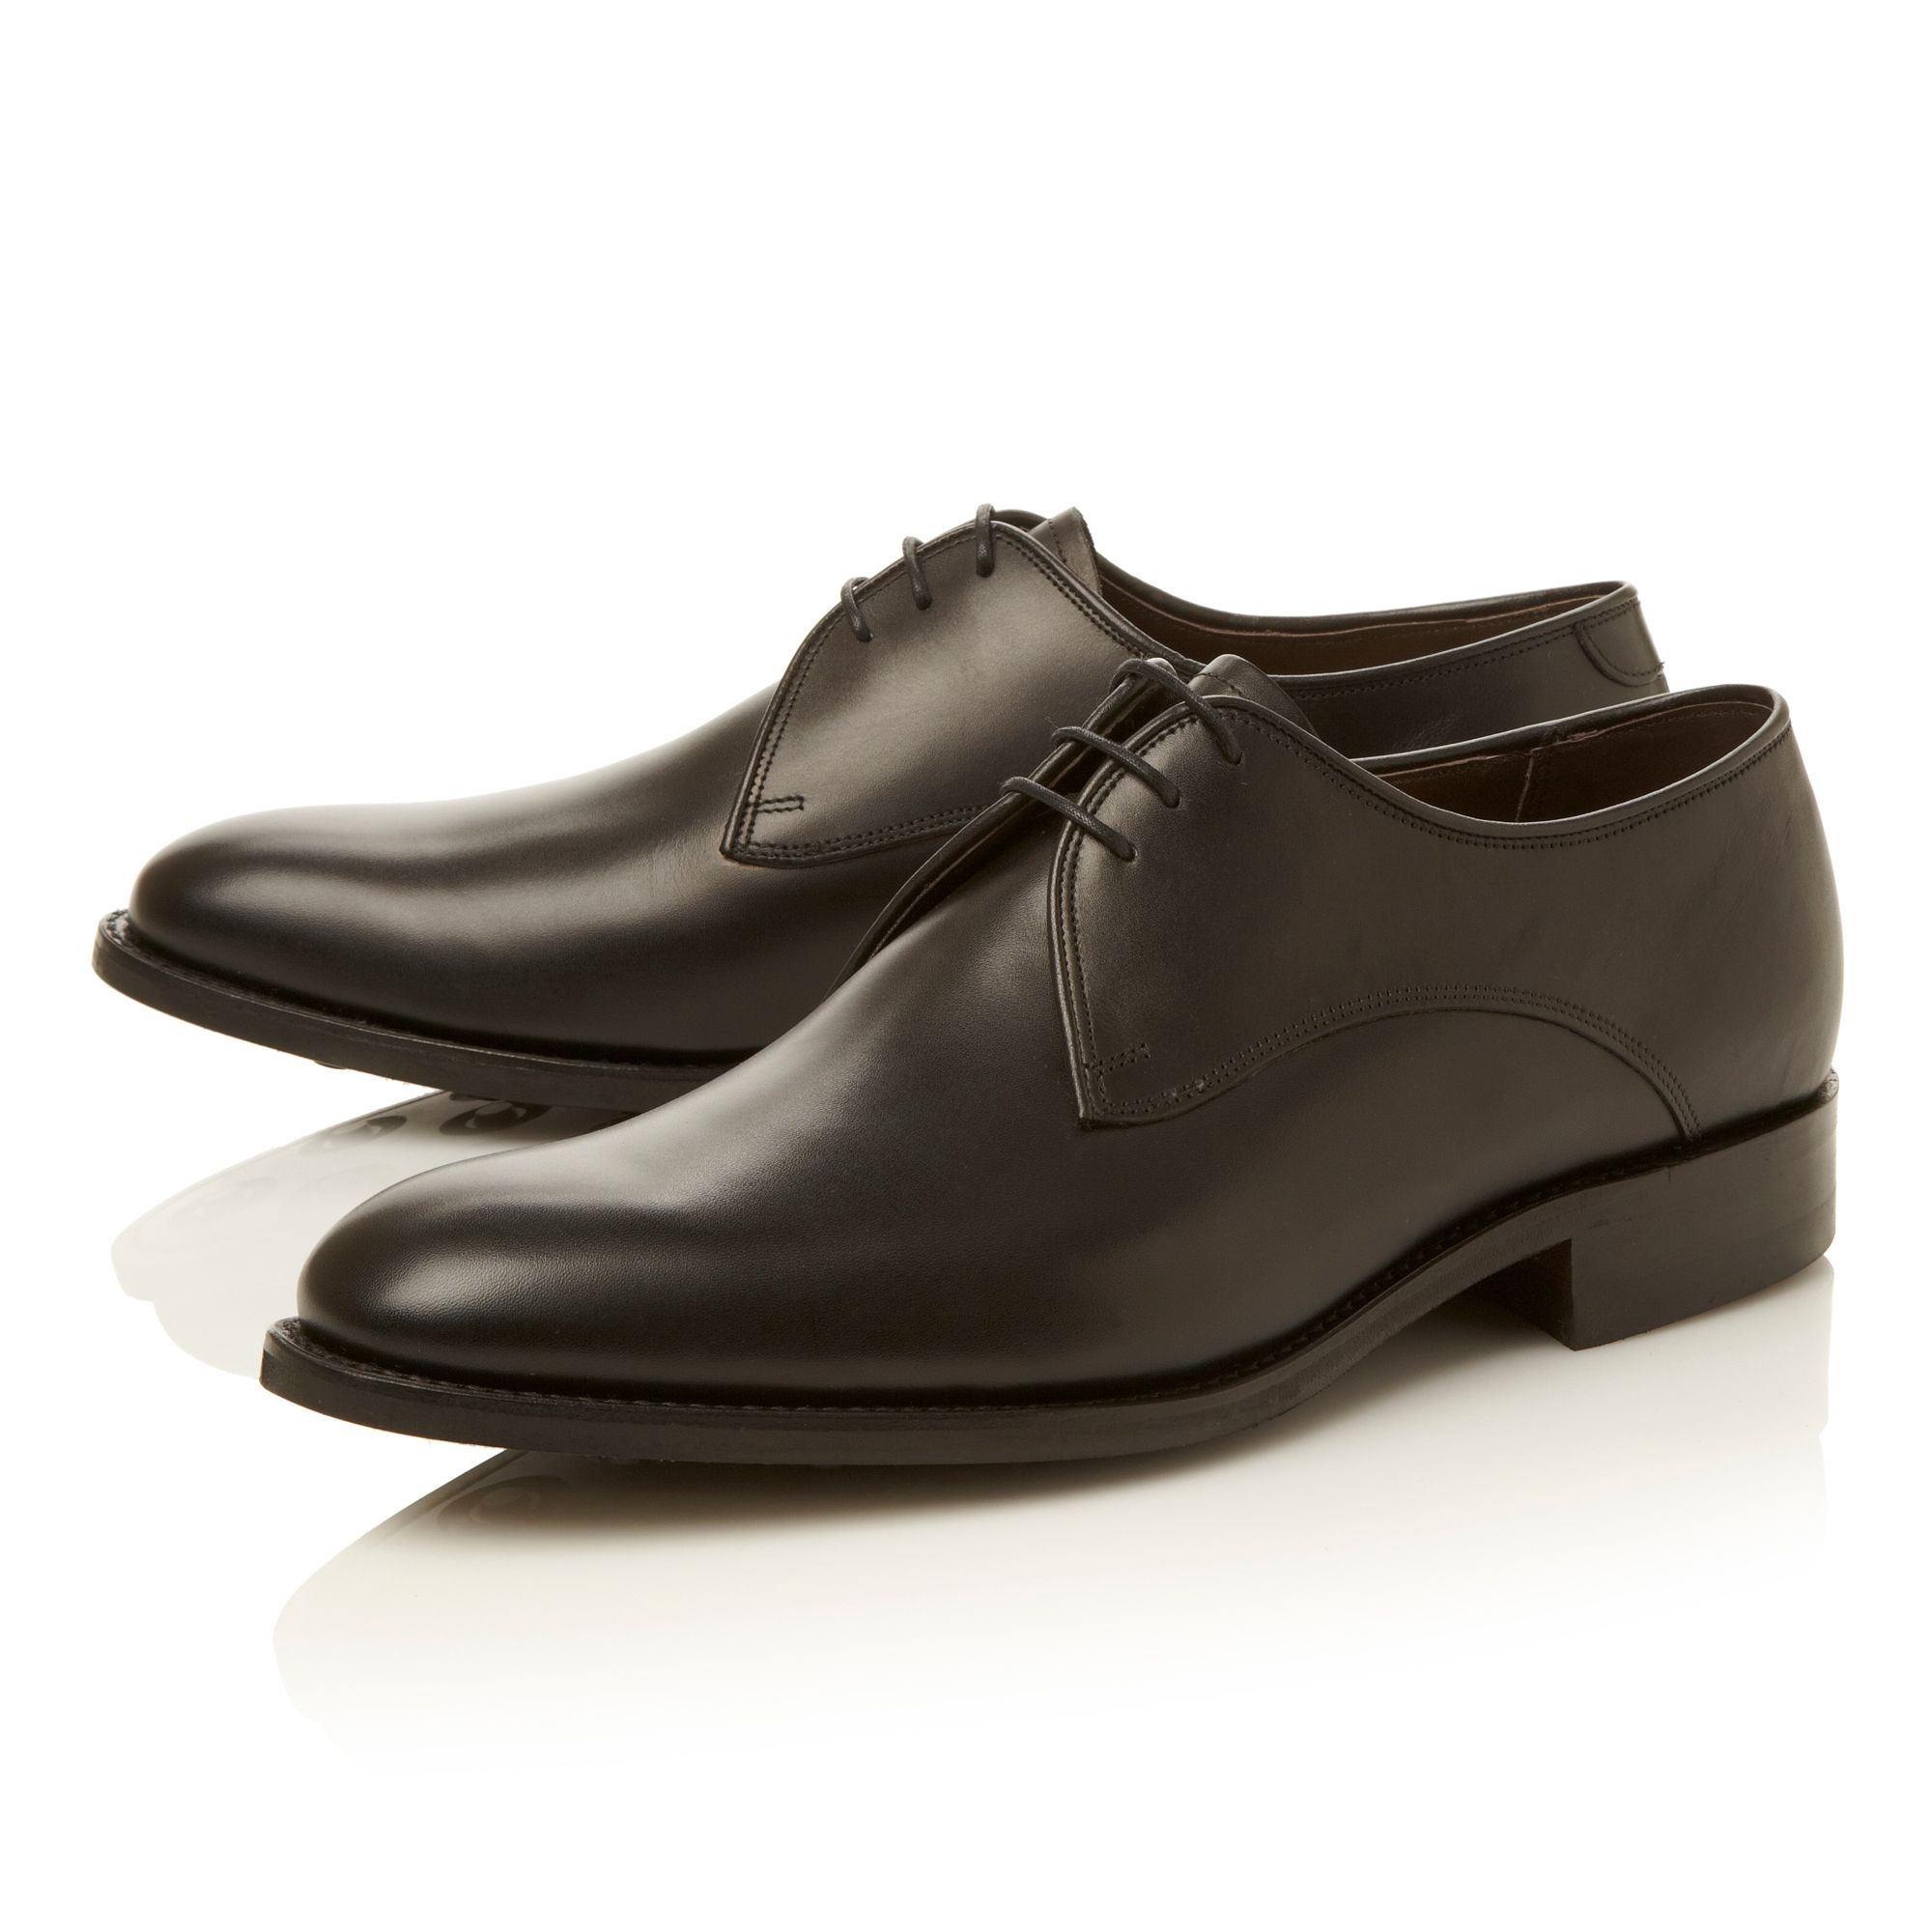 Pitlochry-plain toe 3 eye lace gibson